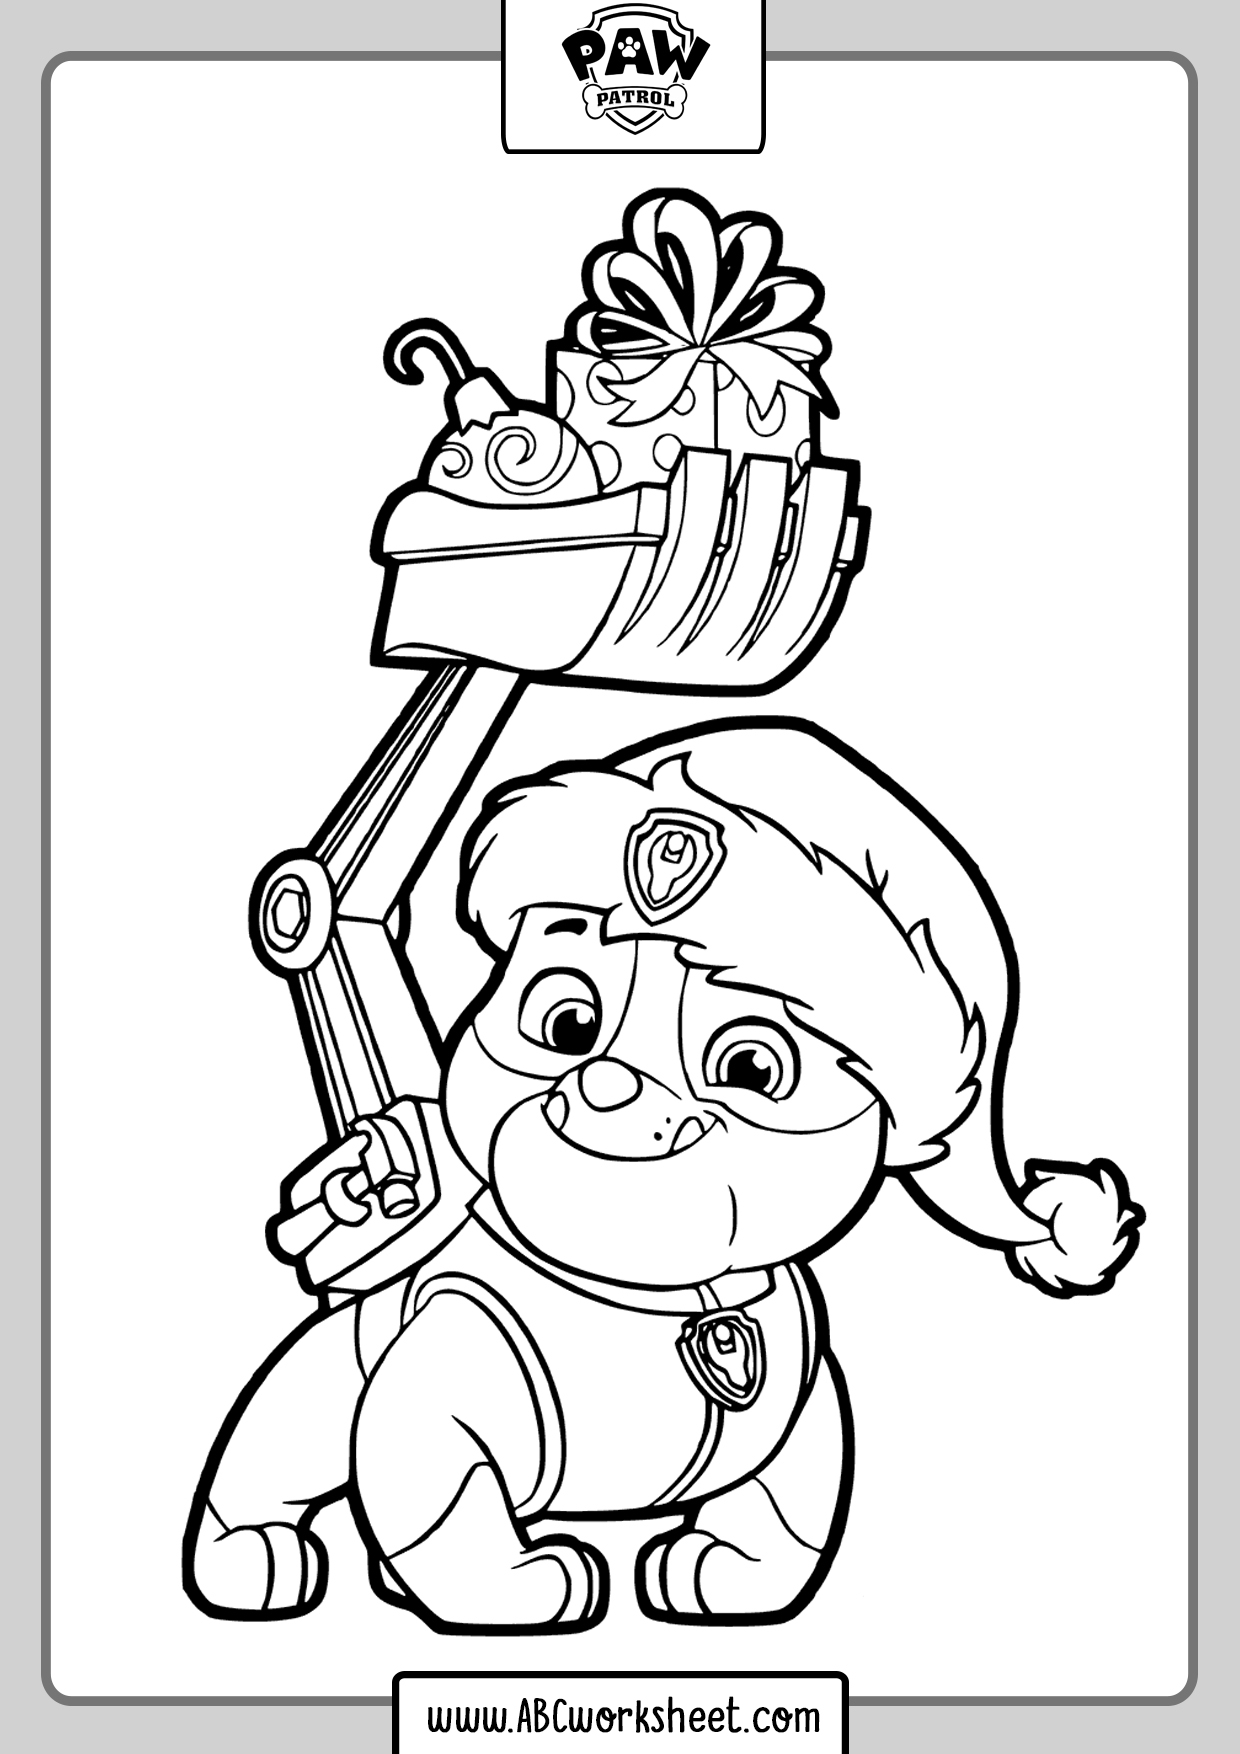 Zuma Paw Patrol Drawings For Coloring